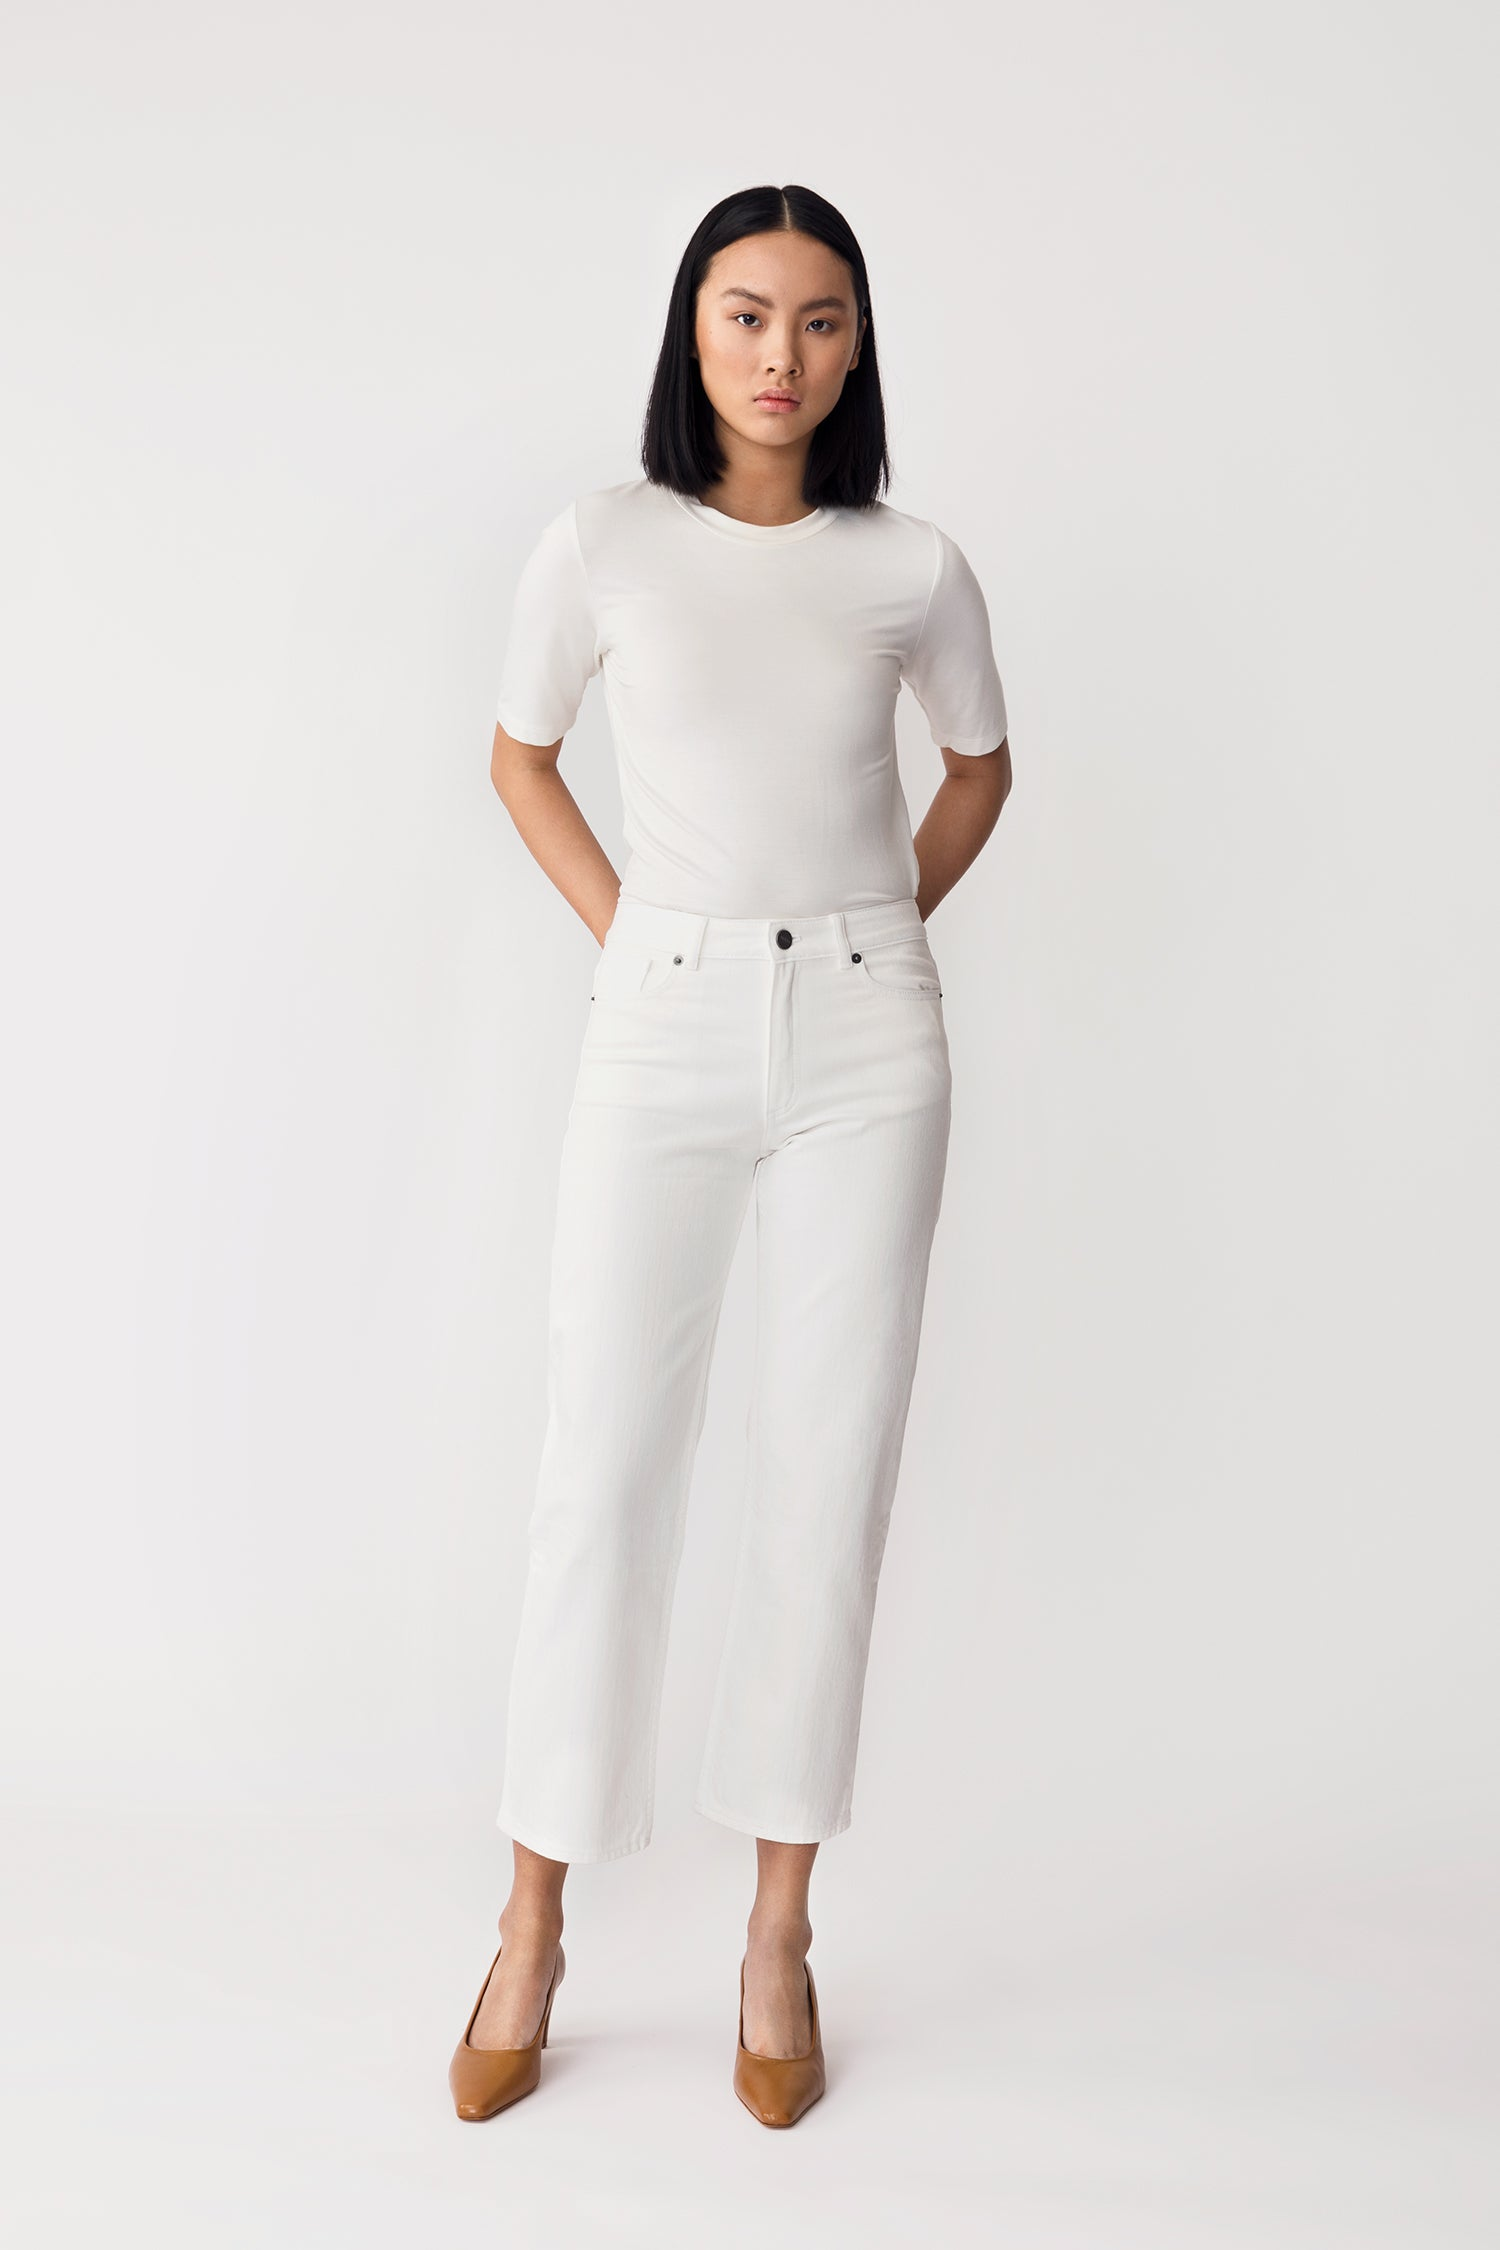 KASEY DENIM - WHITE